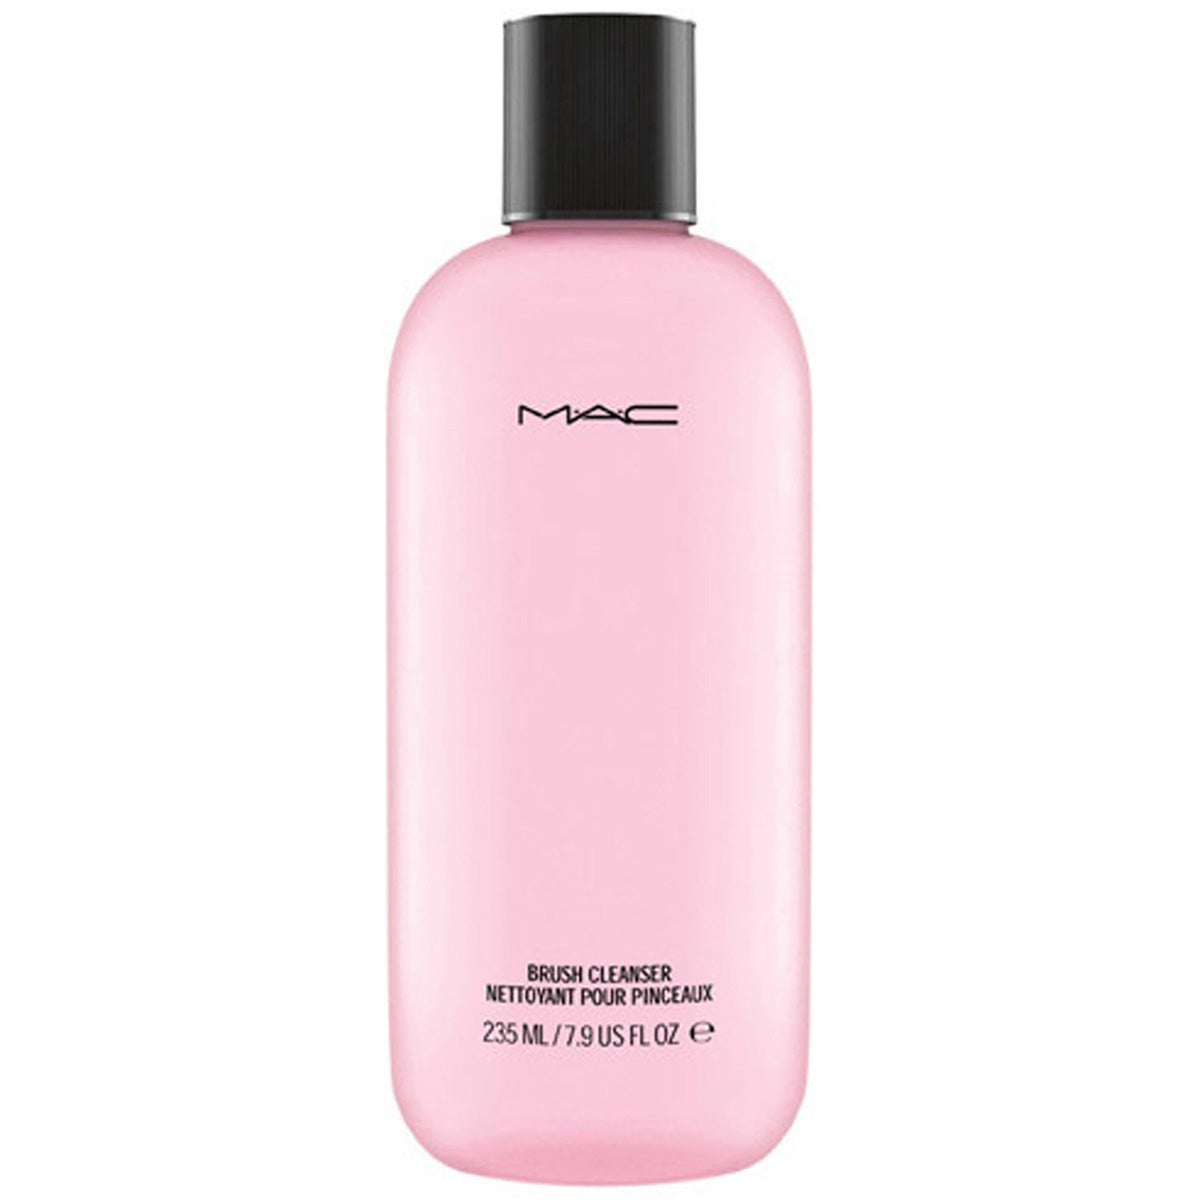 MAC Cosmetics Brush Cleanser